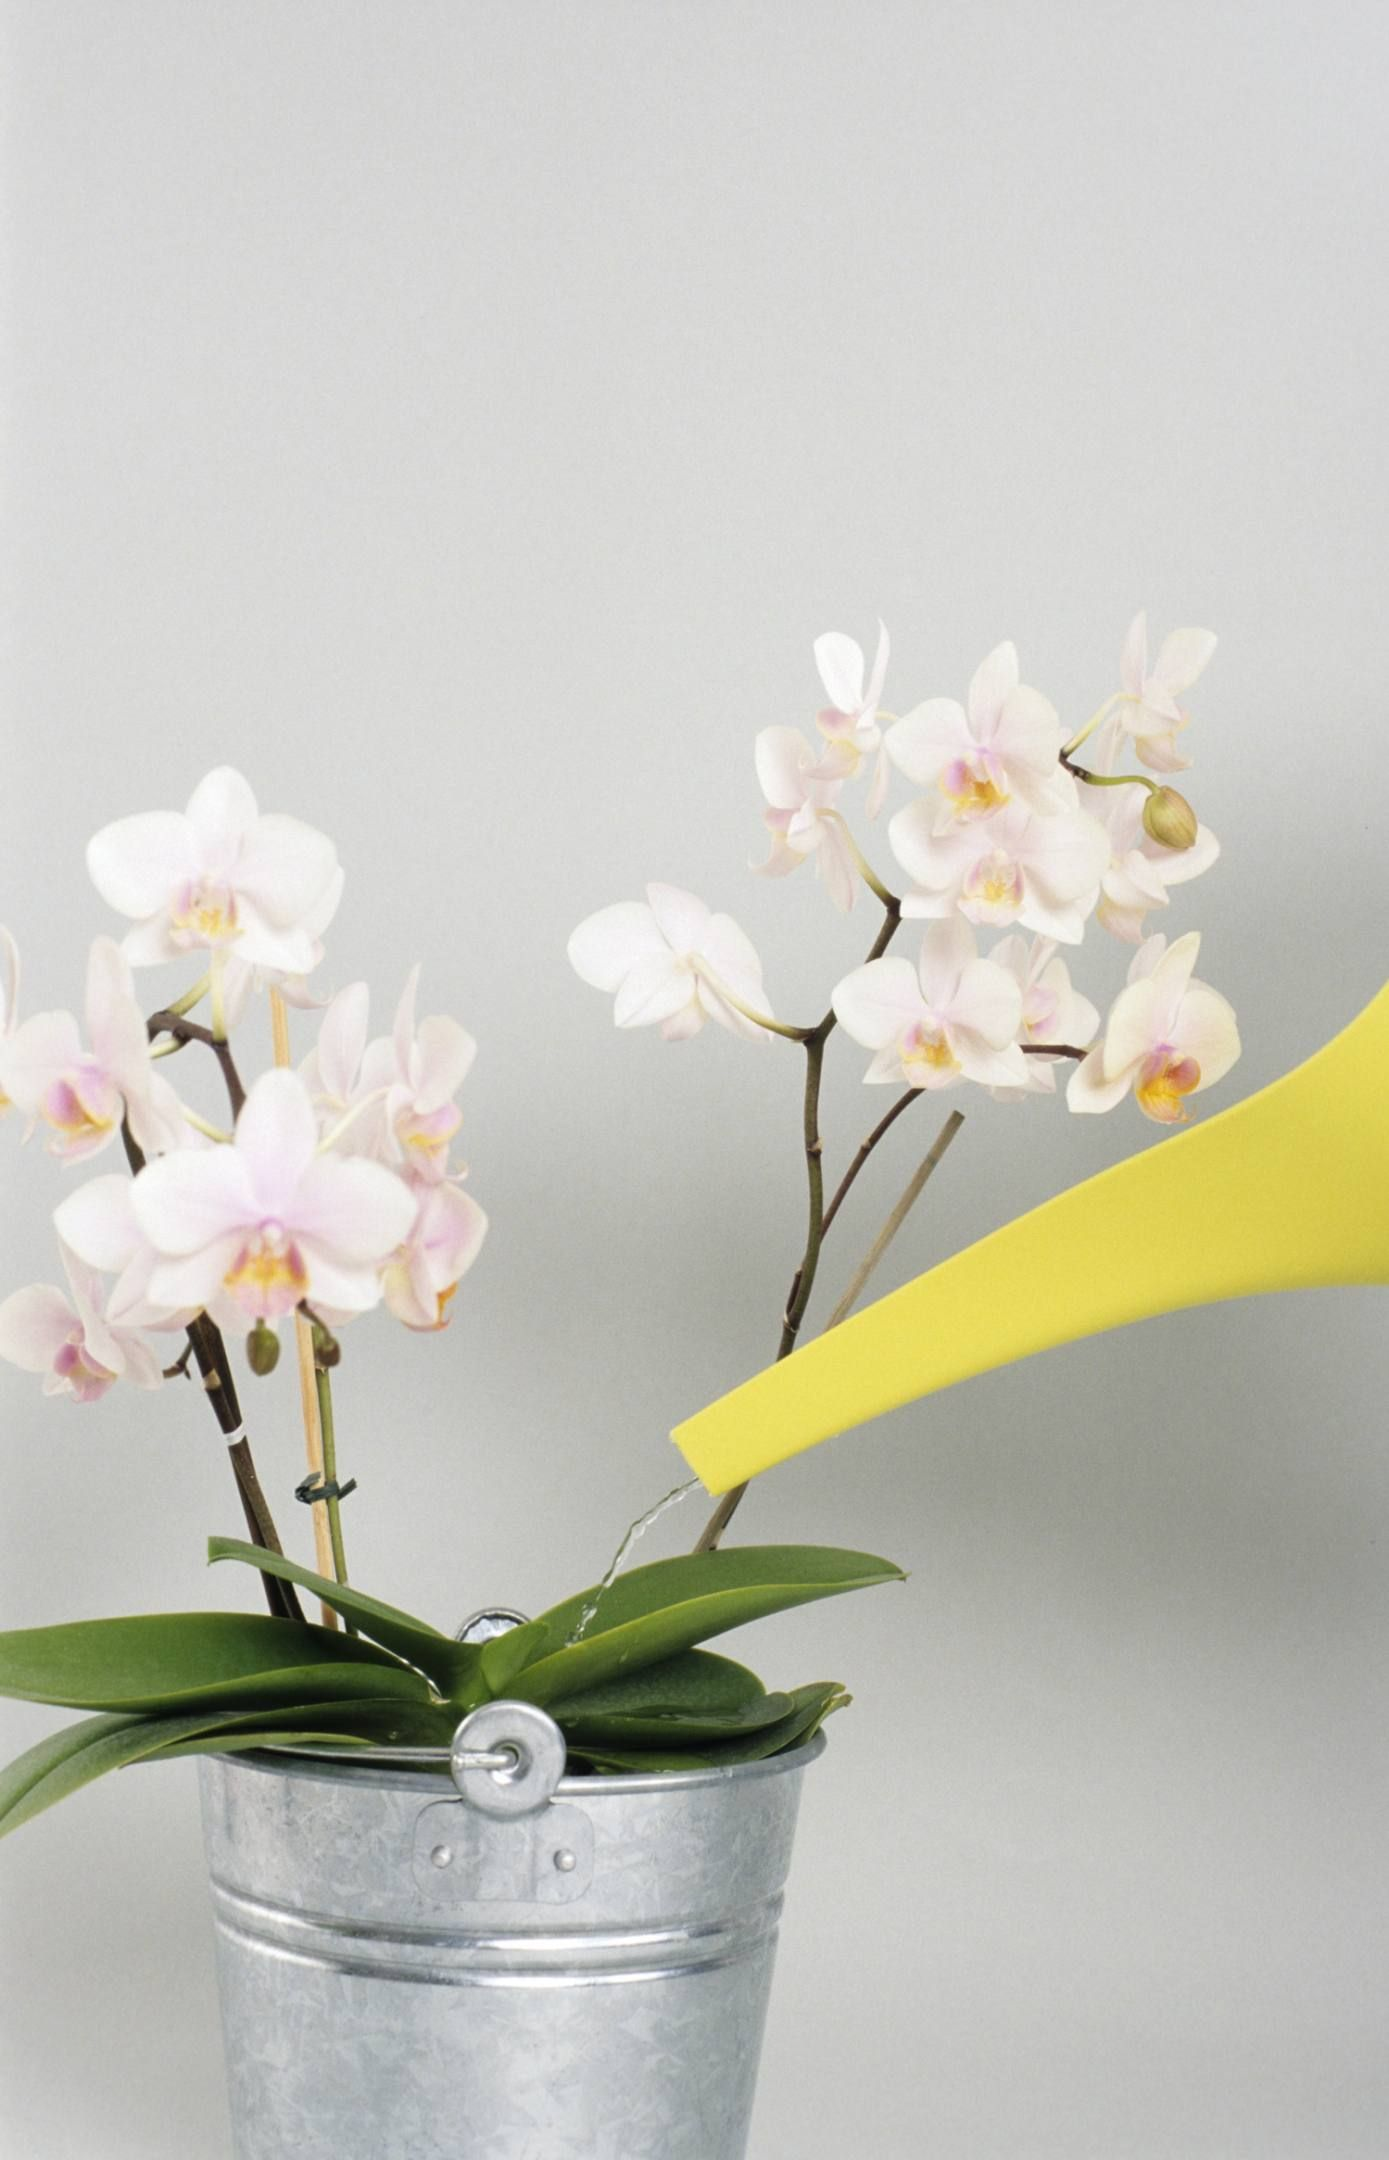 Discover common reasons why an orchid wont bloom and how